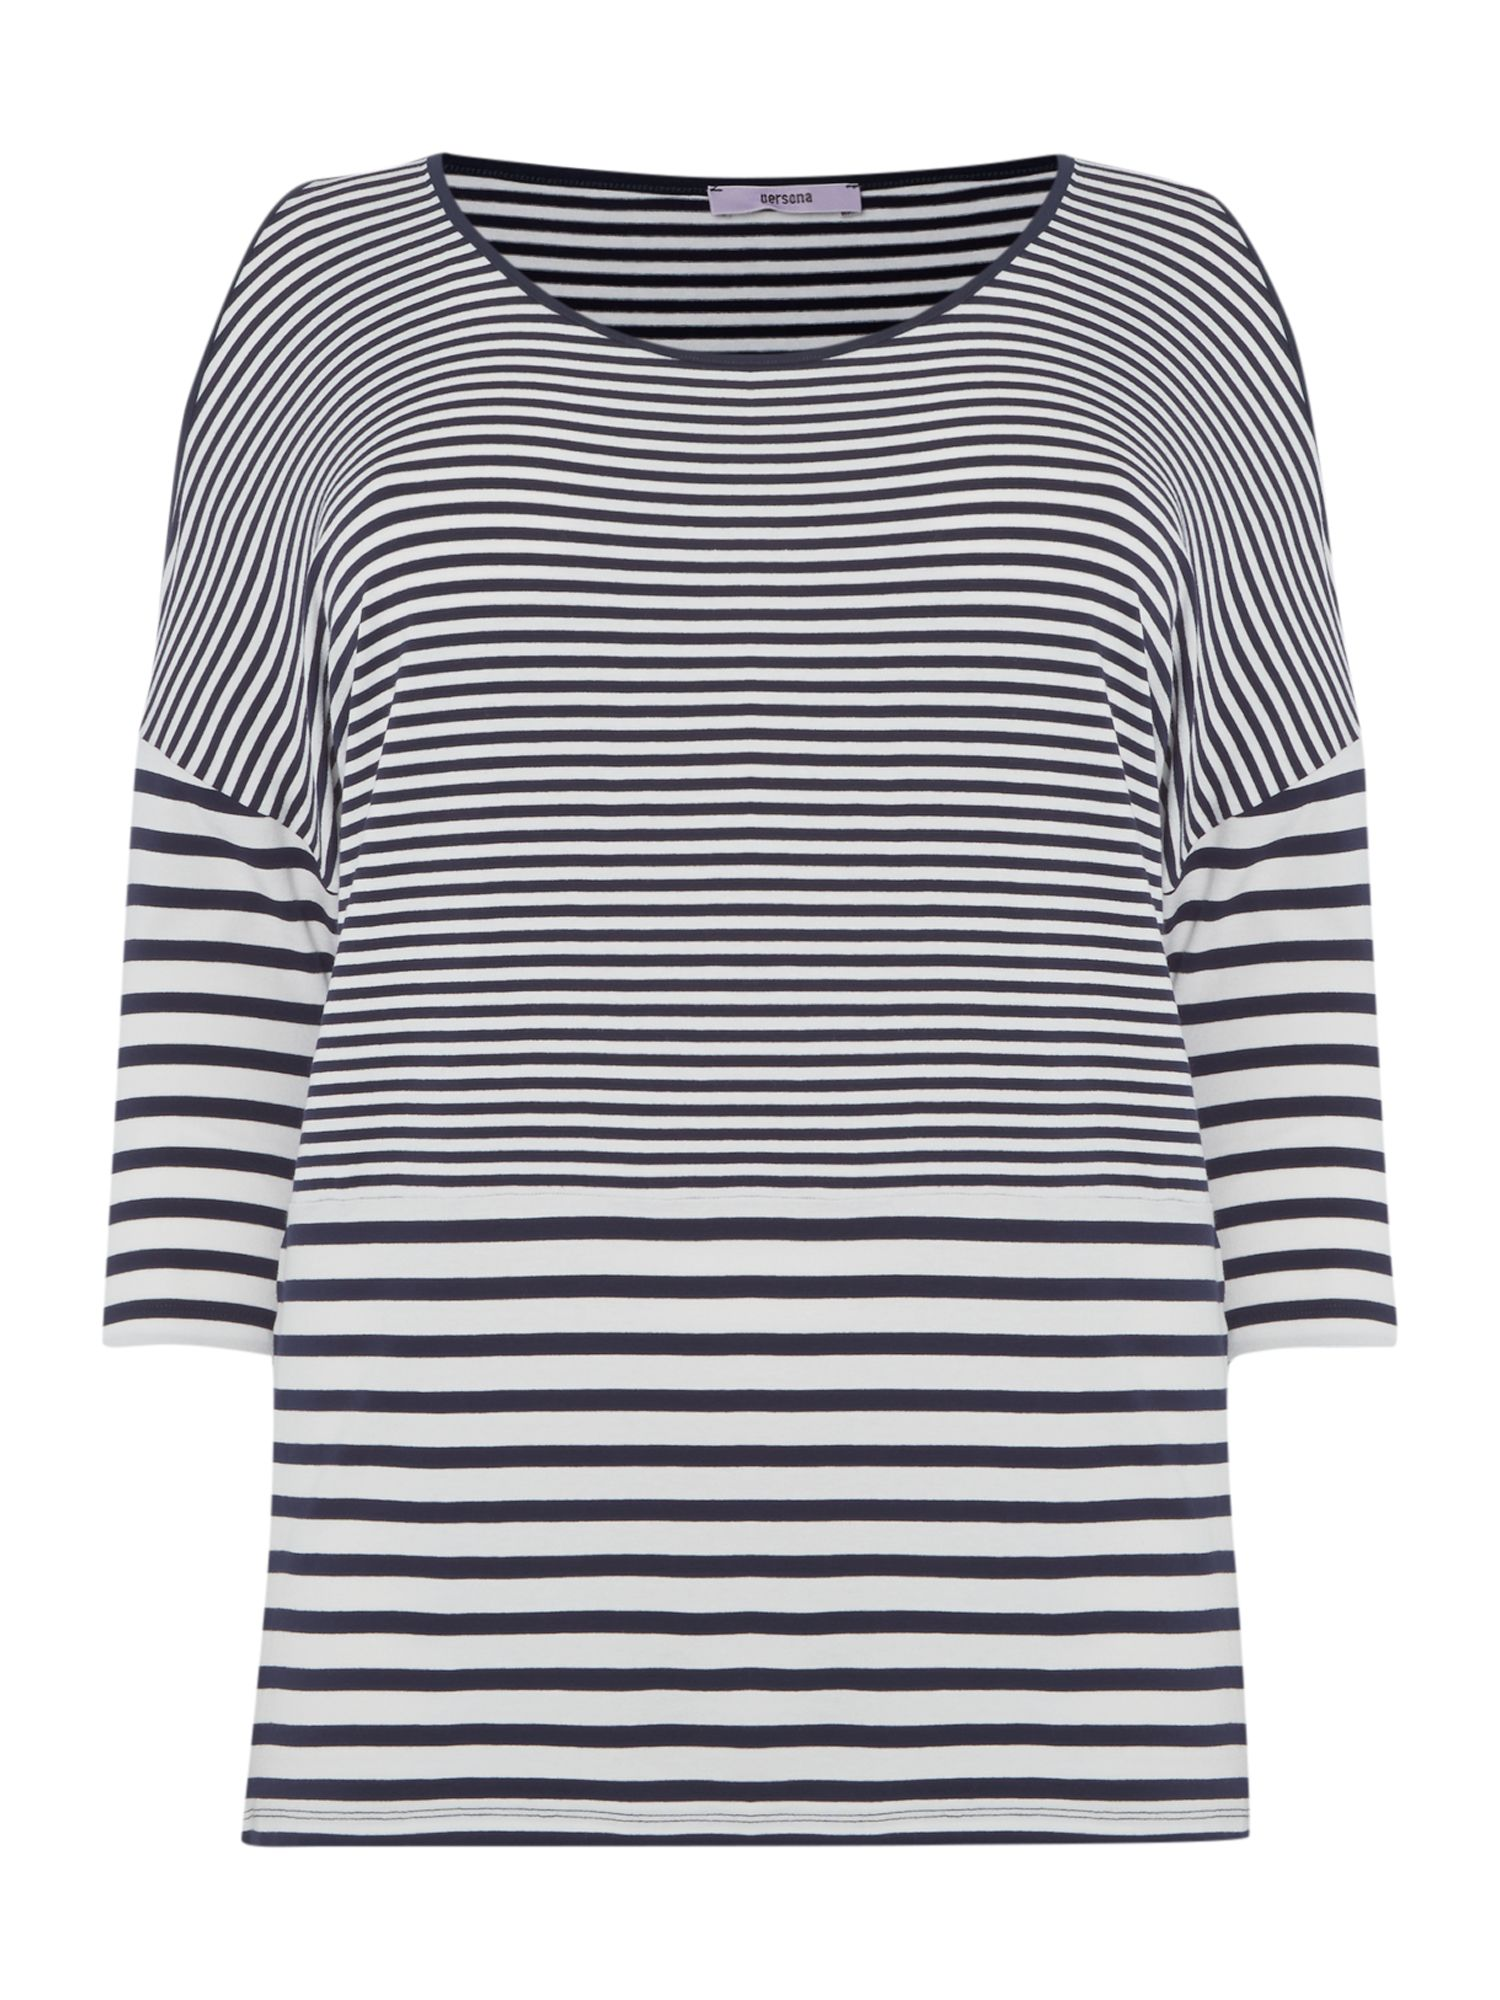 Persona Persona Stripey top with 3/4 sleeves, Navy